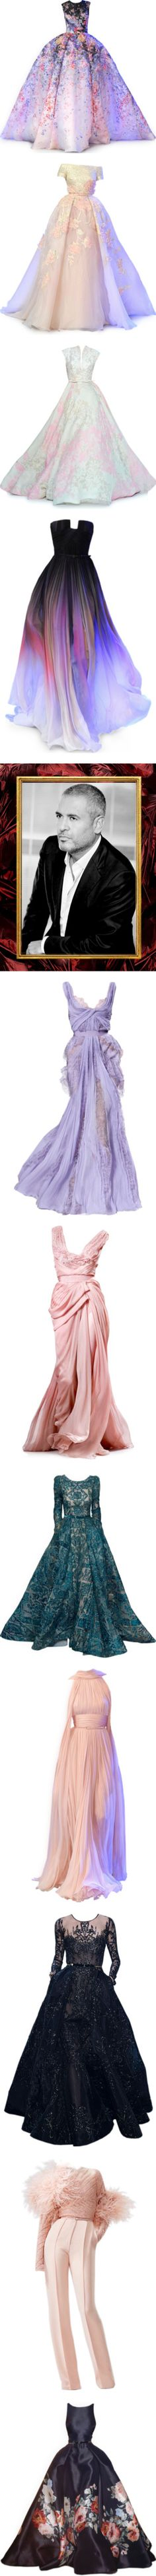 Elie Saab by satinee on Polyvore featuring dresses, gowns, long dresses, elie saab, long purple dress, purple evening dresses, elie saab dresses, purple ball gown, henley dress and long dress